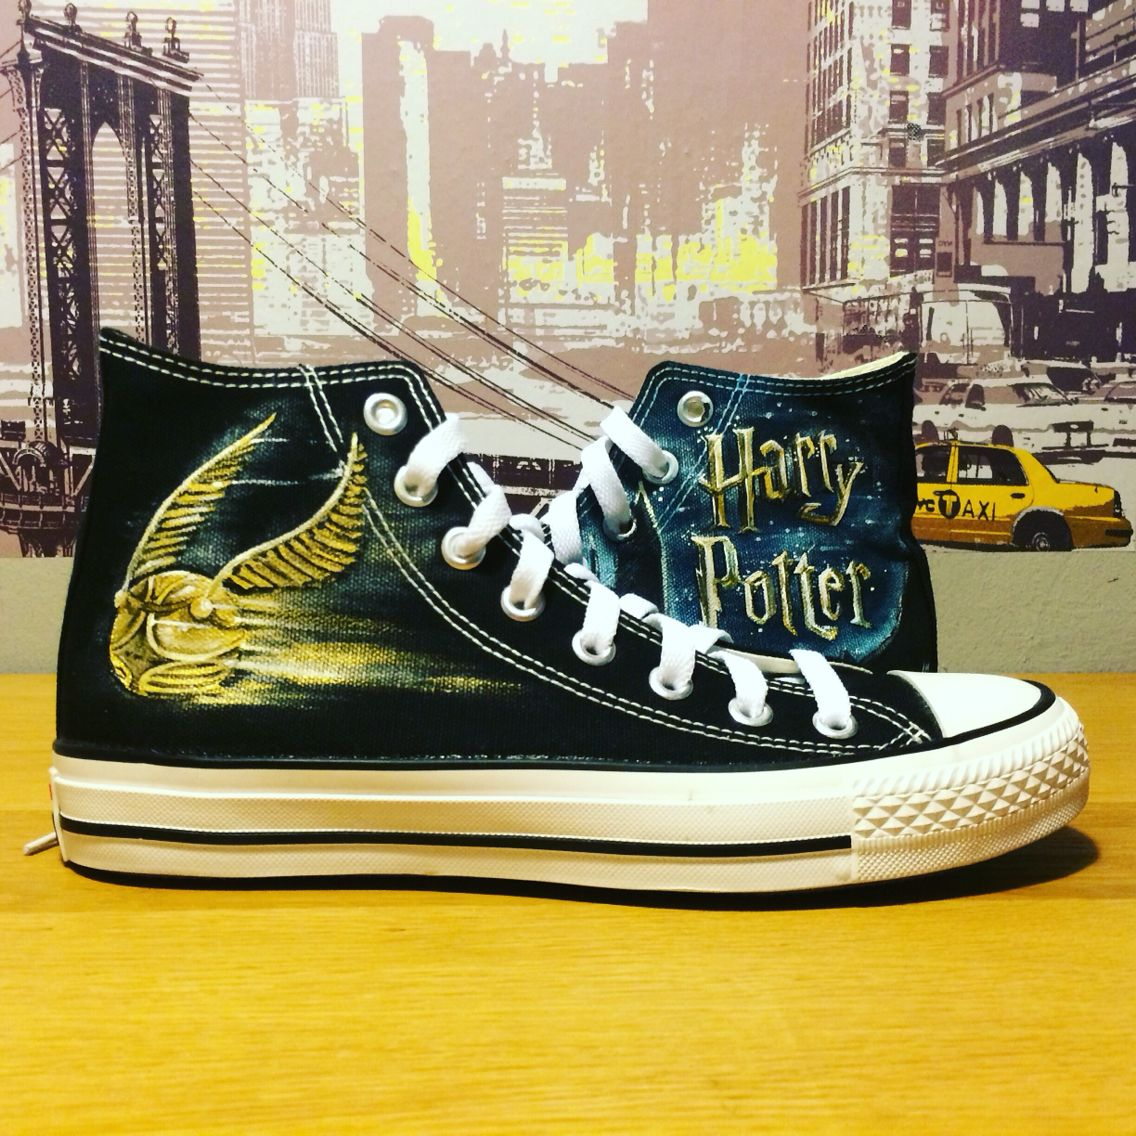 f3f43e3929605b Harry Potter handmade sneakers! Love it! These are mine! Made by   pimpamcreations